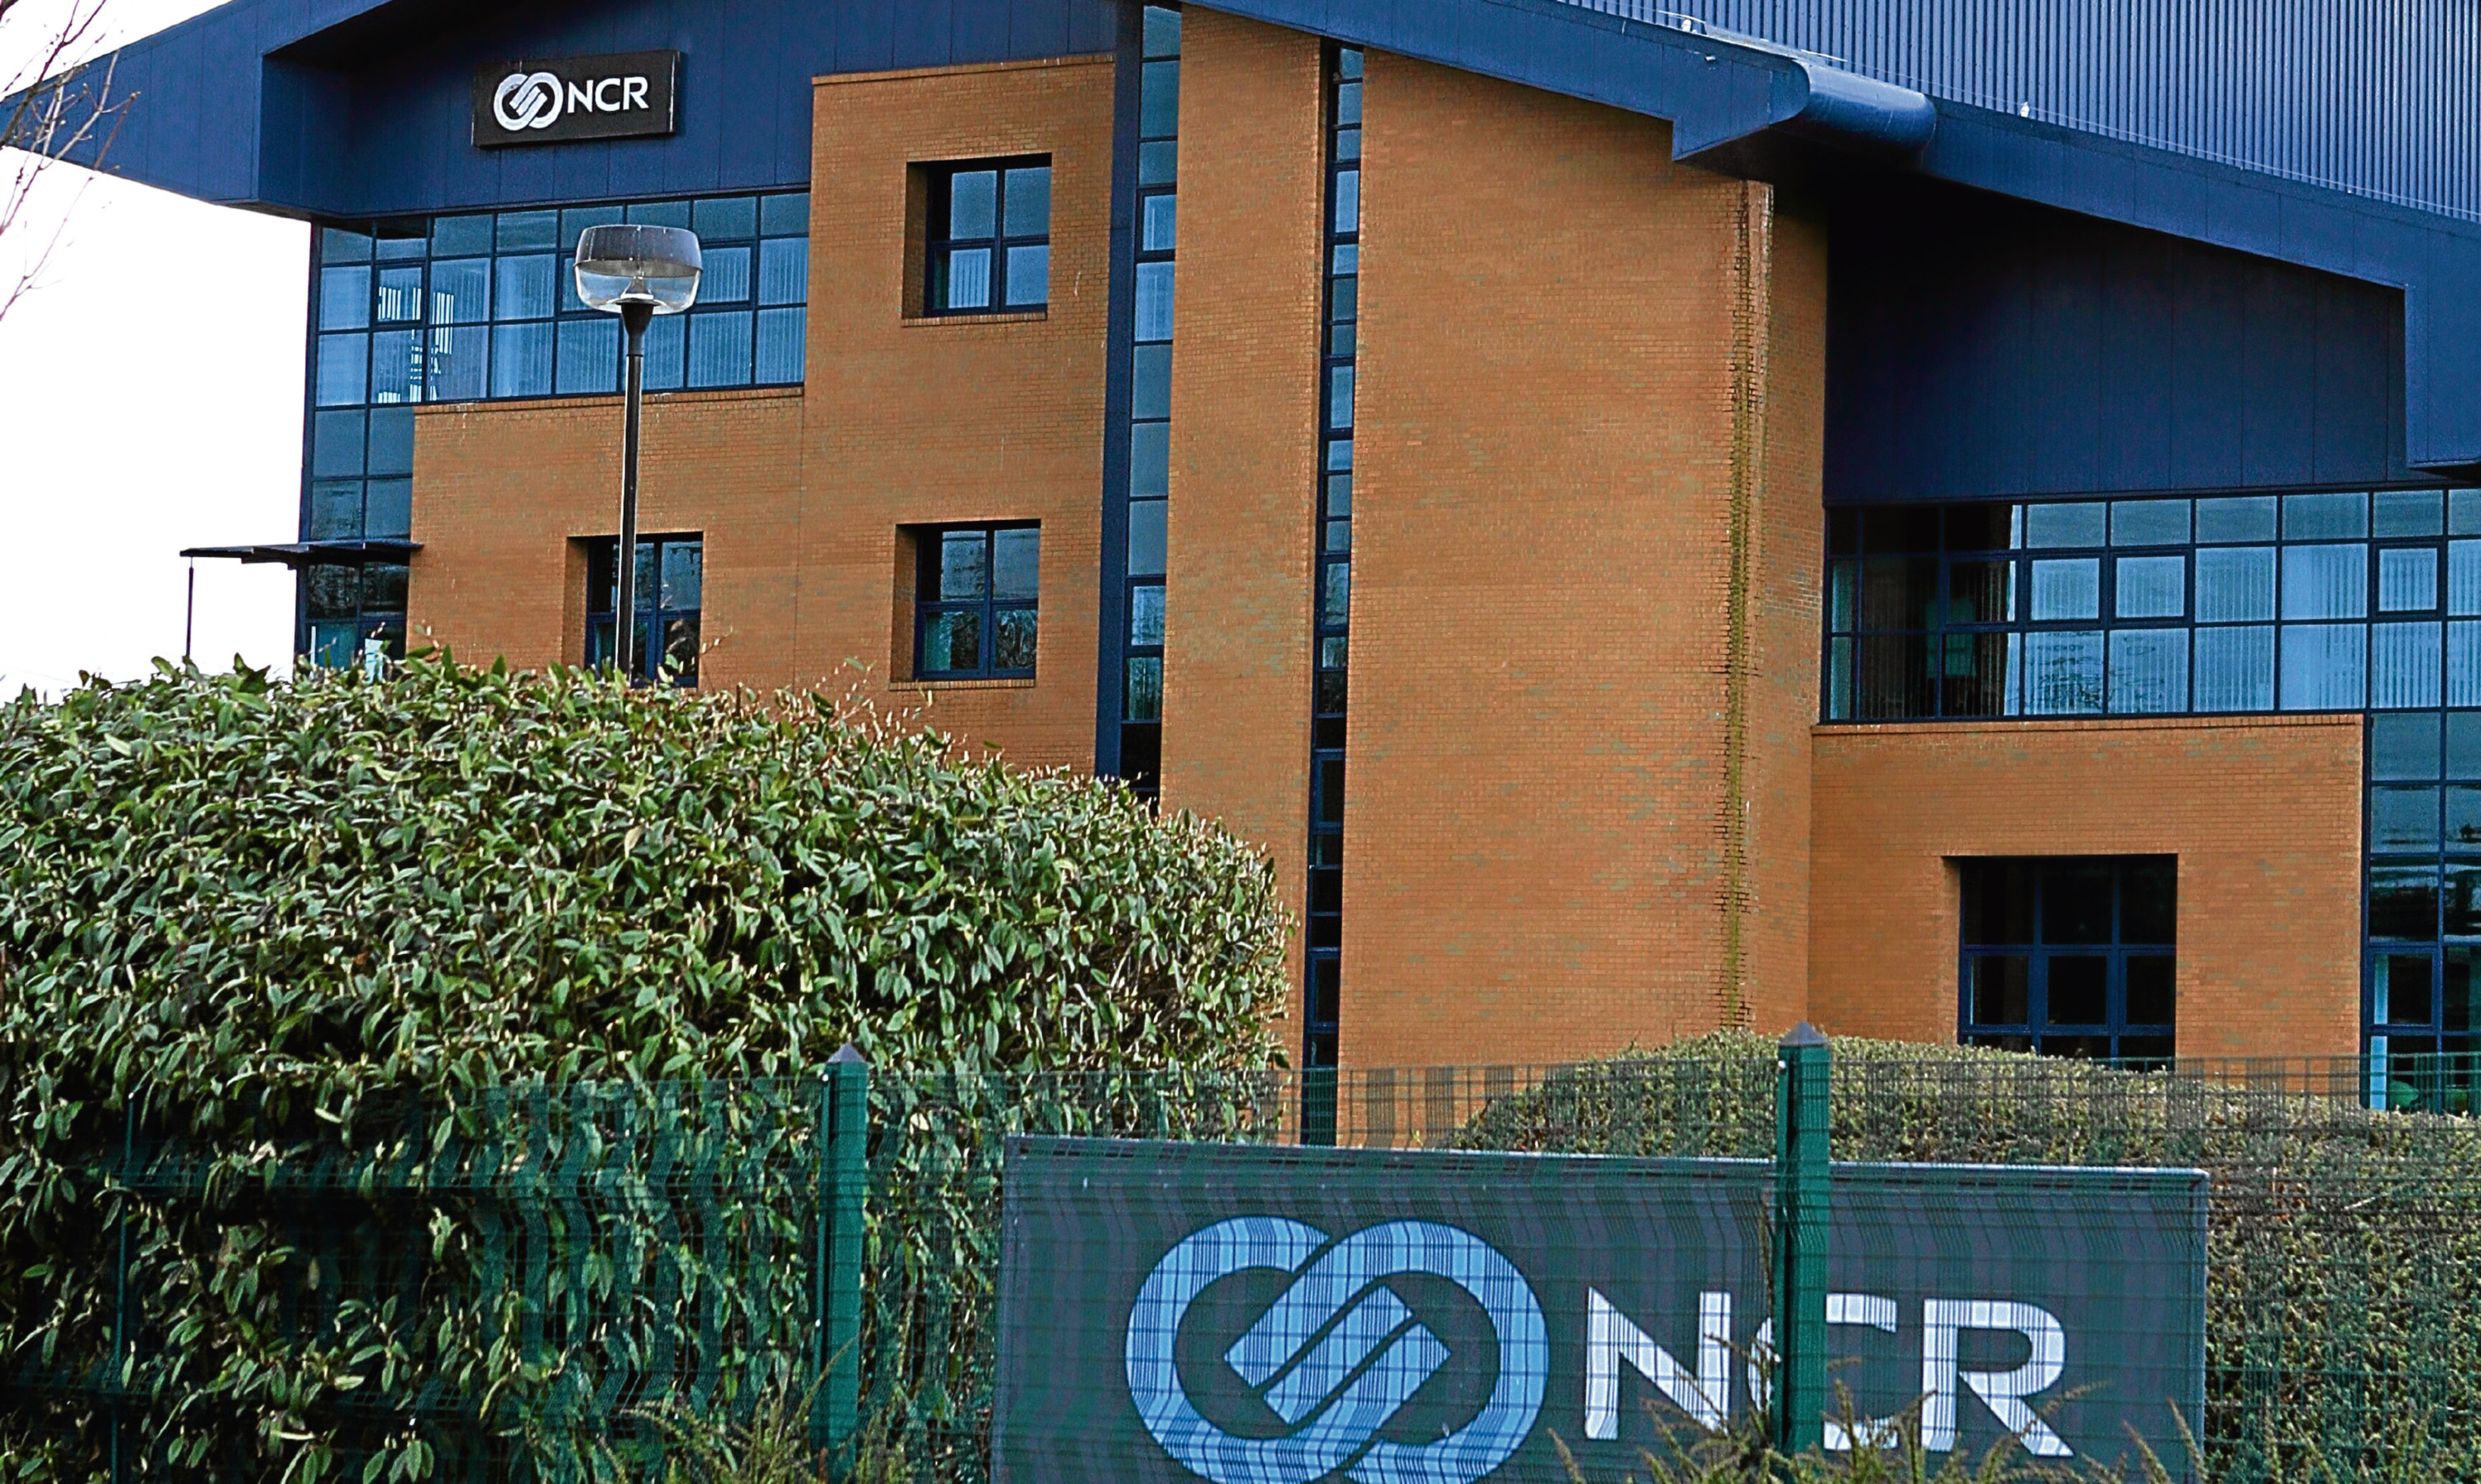 The NCR building in Dundee